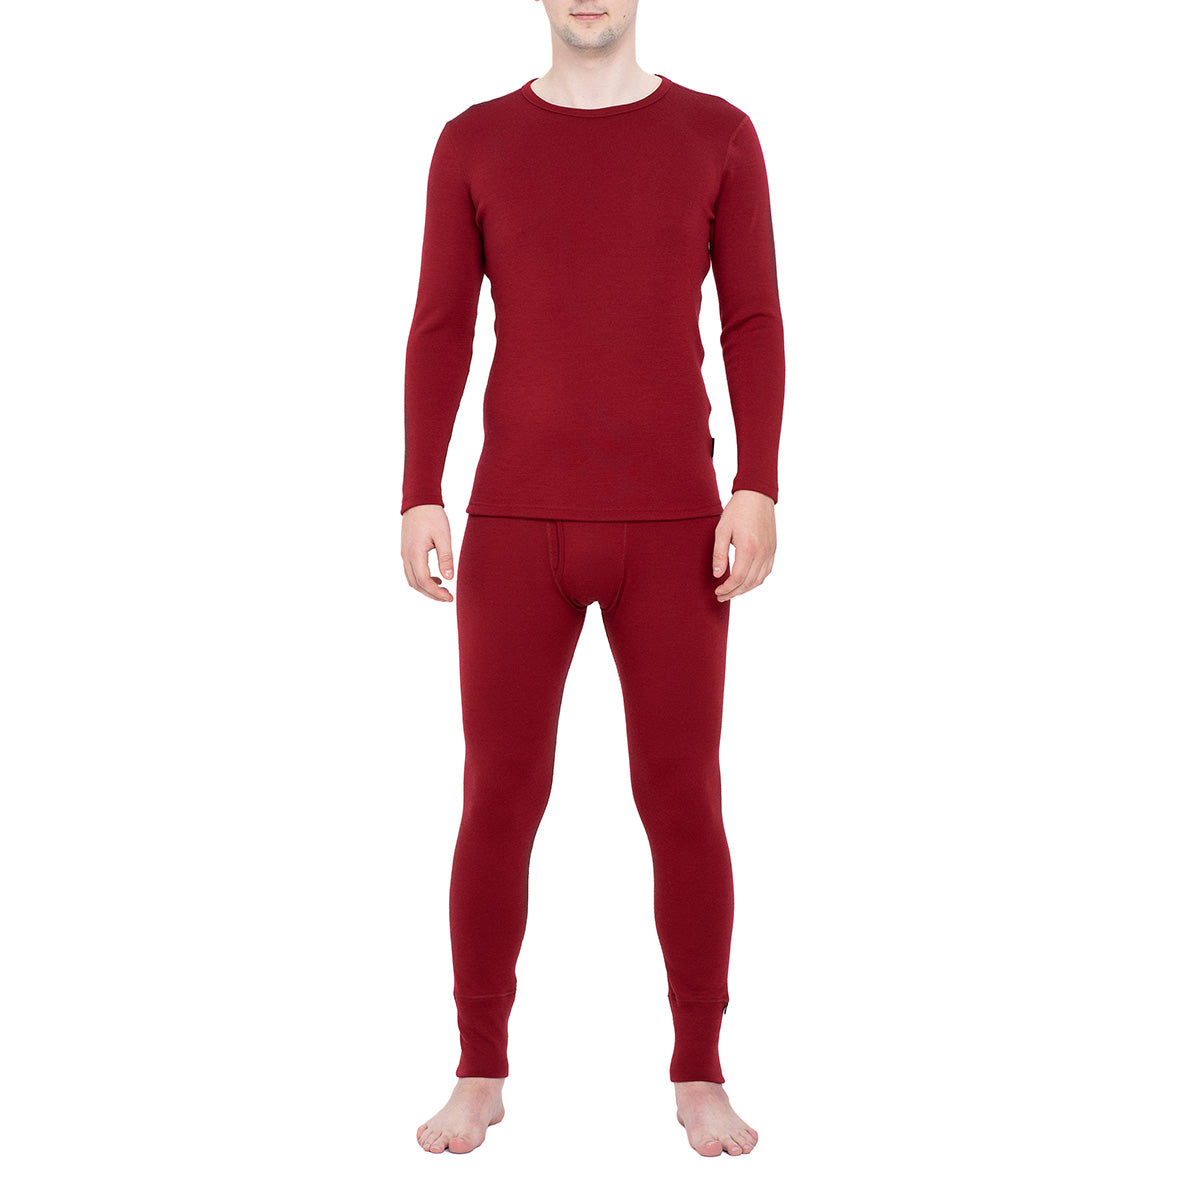 Men's Long Sleeve Set 250gsm Merino Wool Royal Cherry